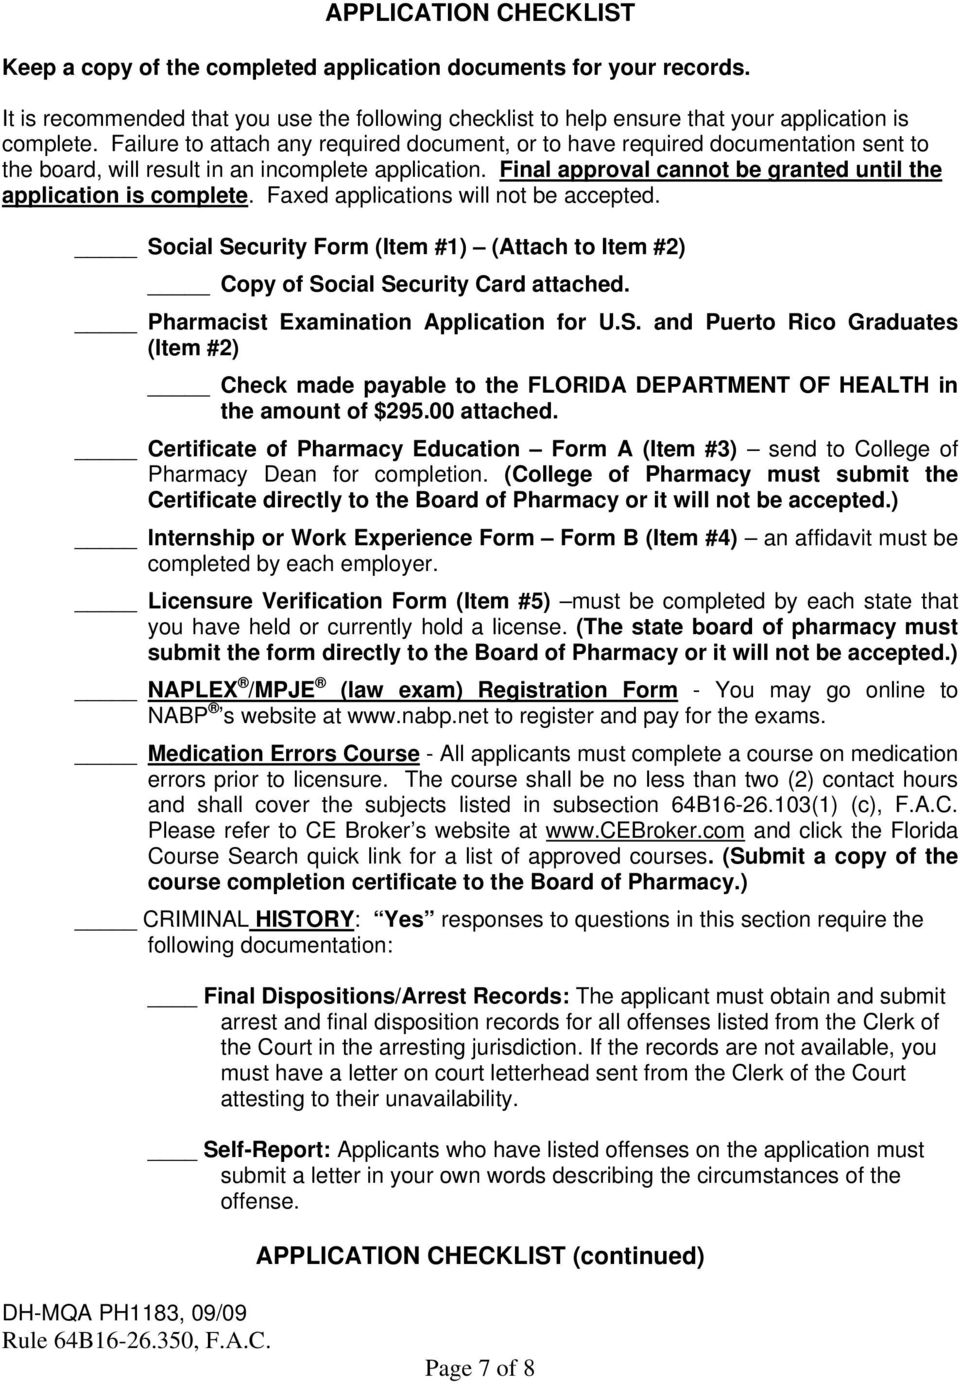 Final approval cannot be granted until the application is complete. Faxed applications will not be accepted. Social Security Form (Item #1) (Attach to Item #2) Copy of Social Security Card attached.